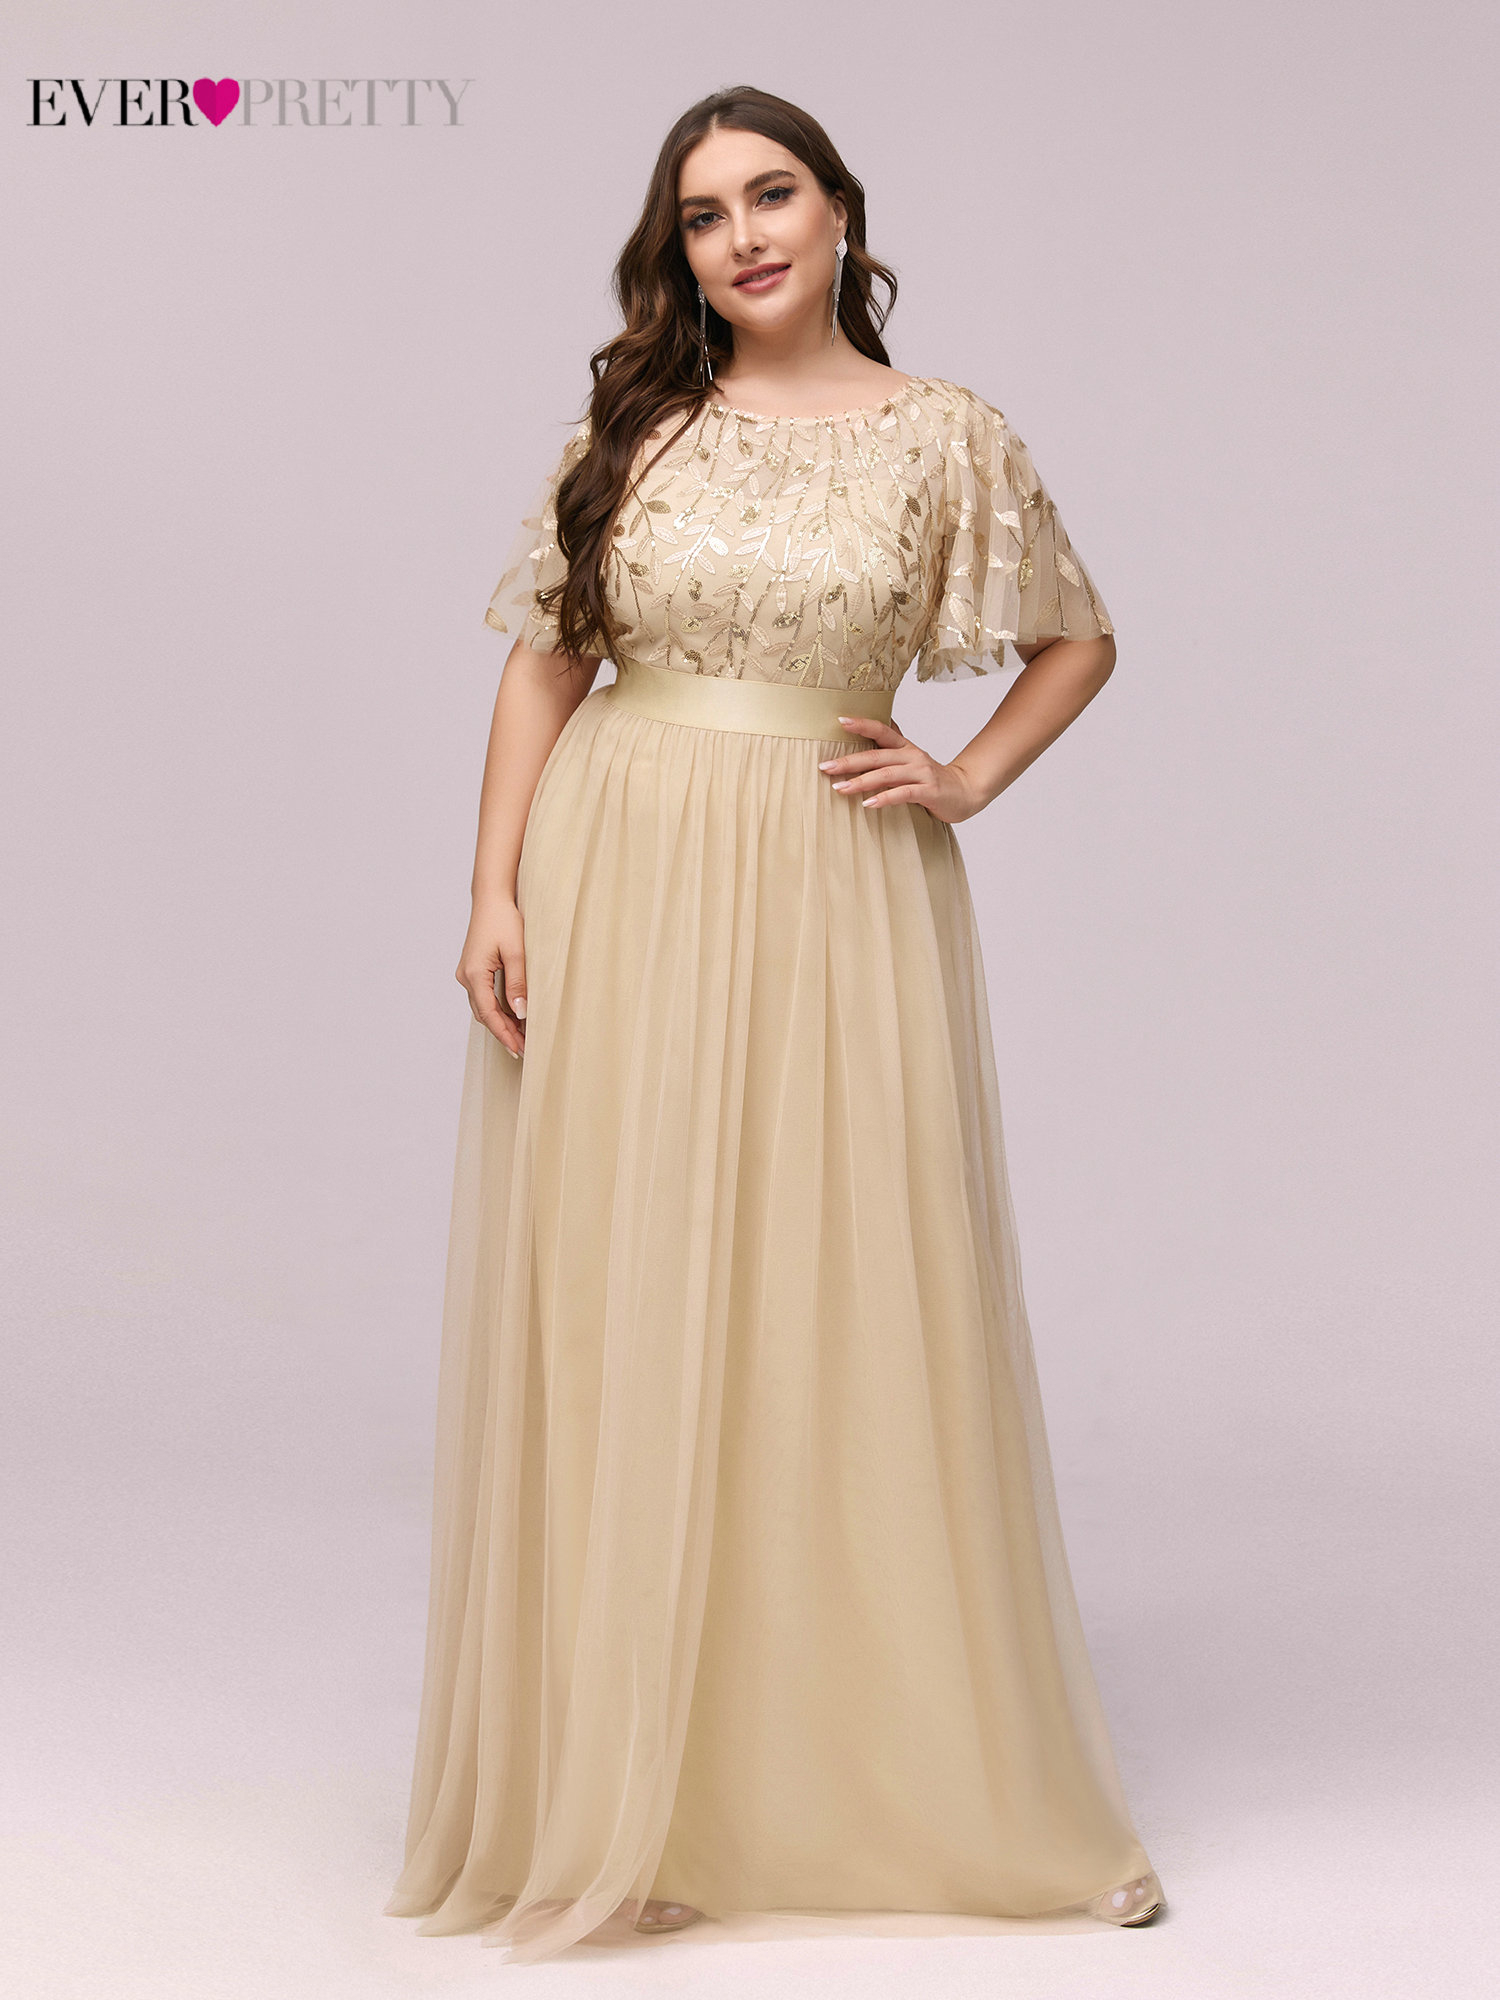 Evening-Dresses Sequined Tulle Ever Pretty A-Line Elegante Formal Long Plus-Size Vestido